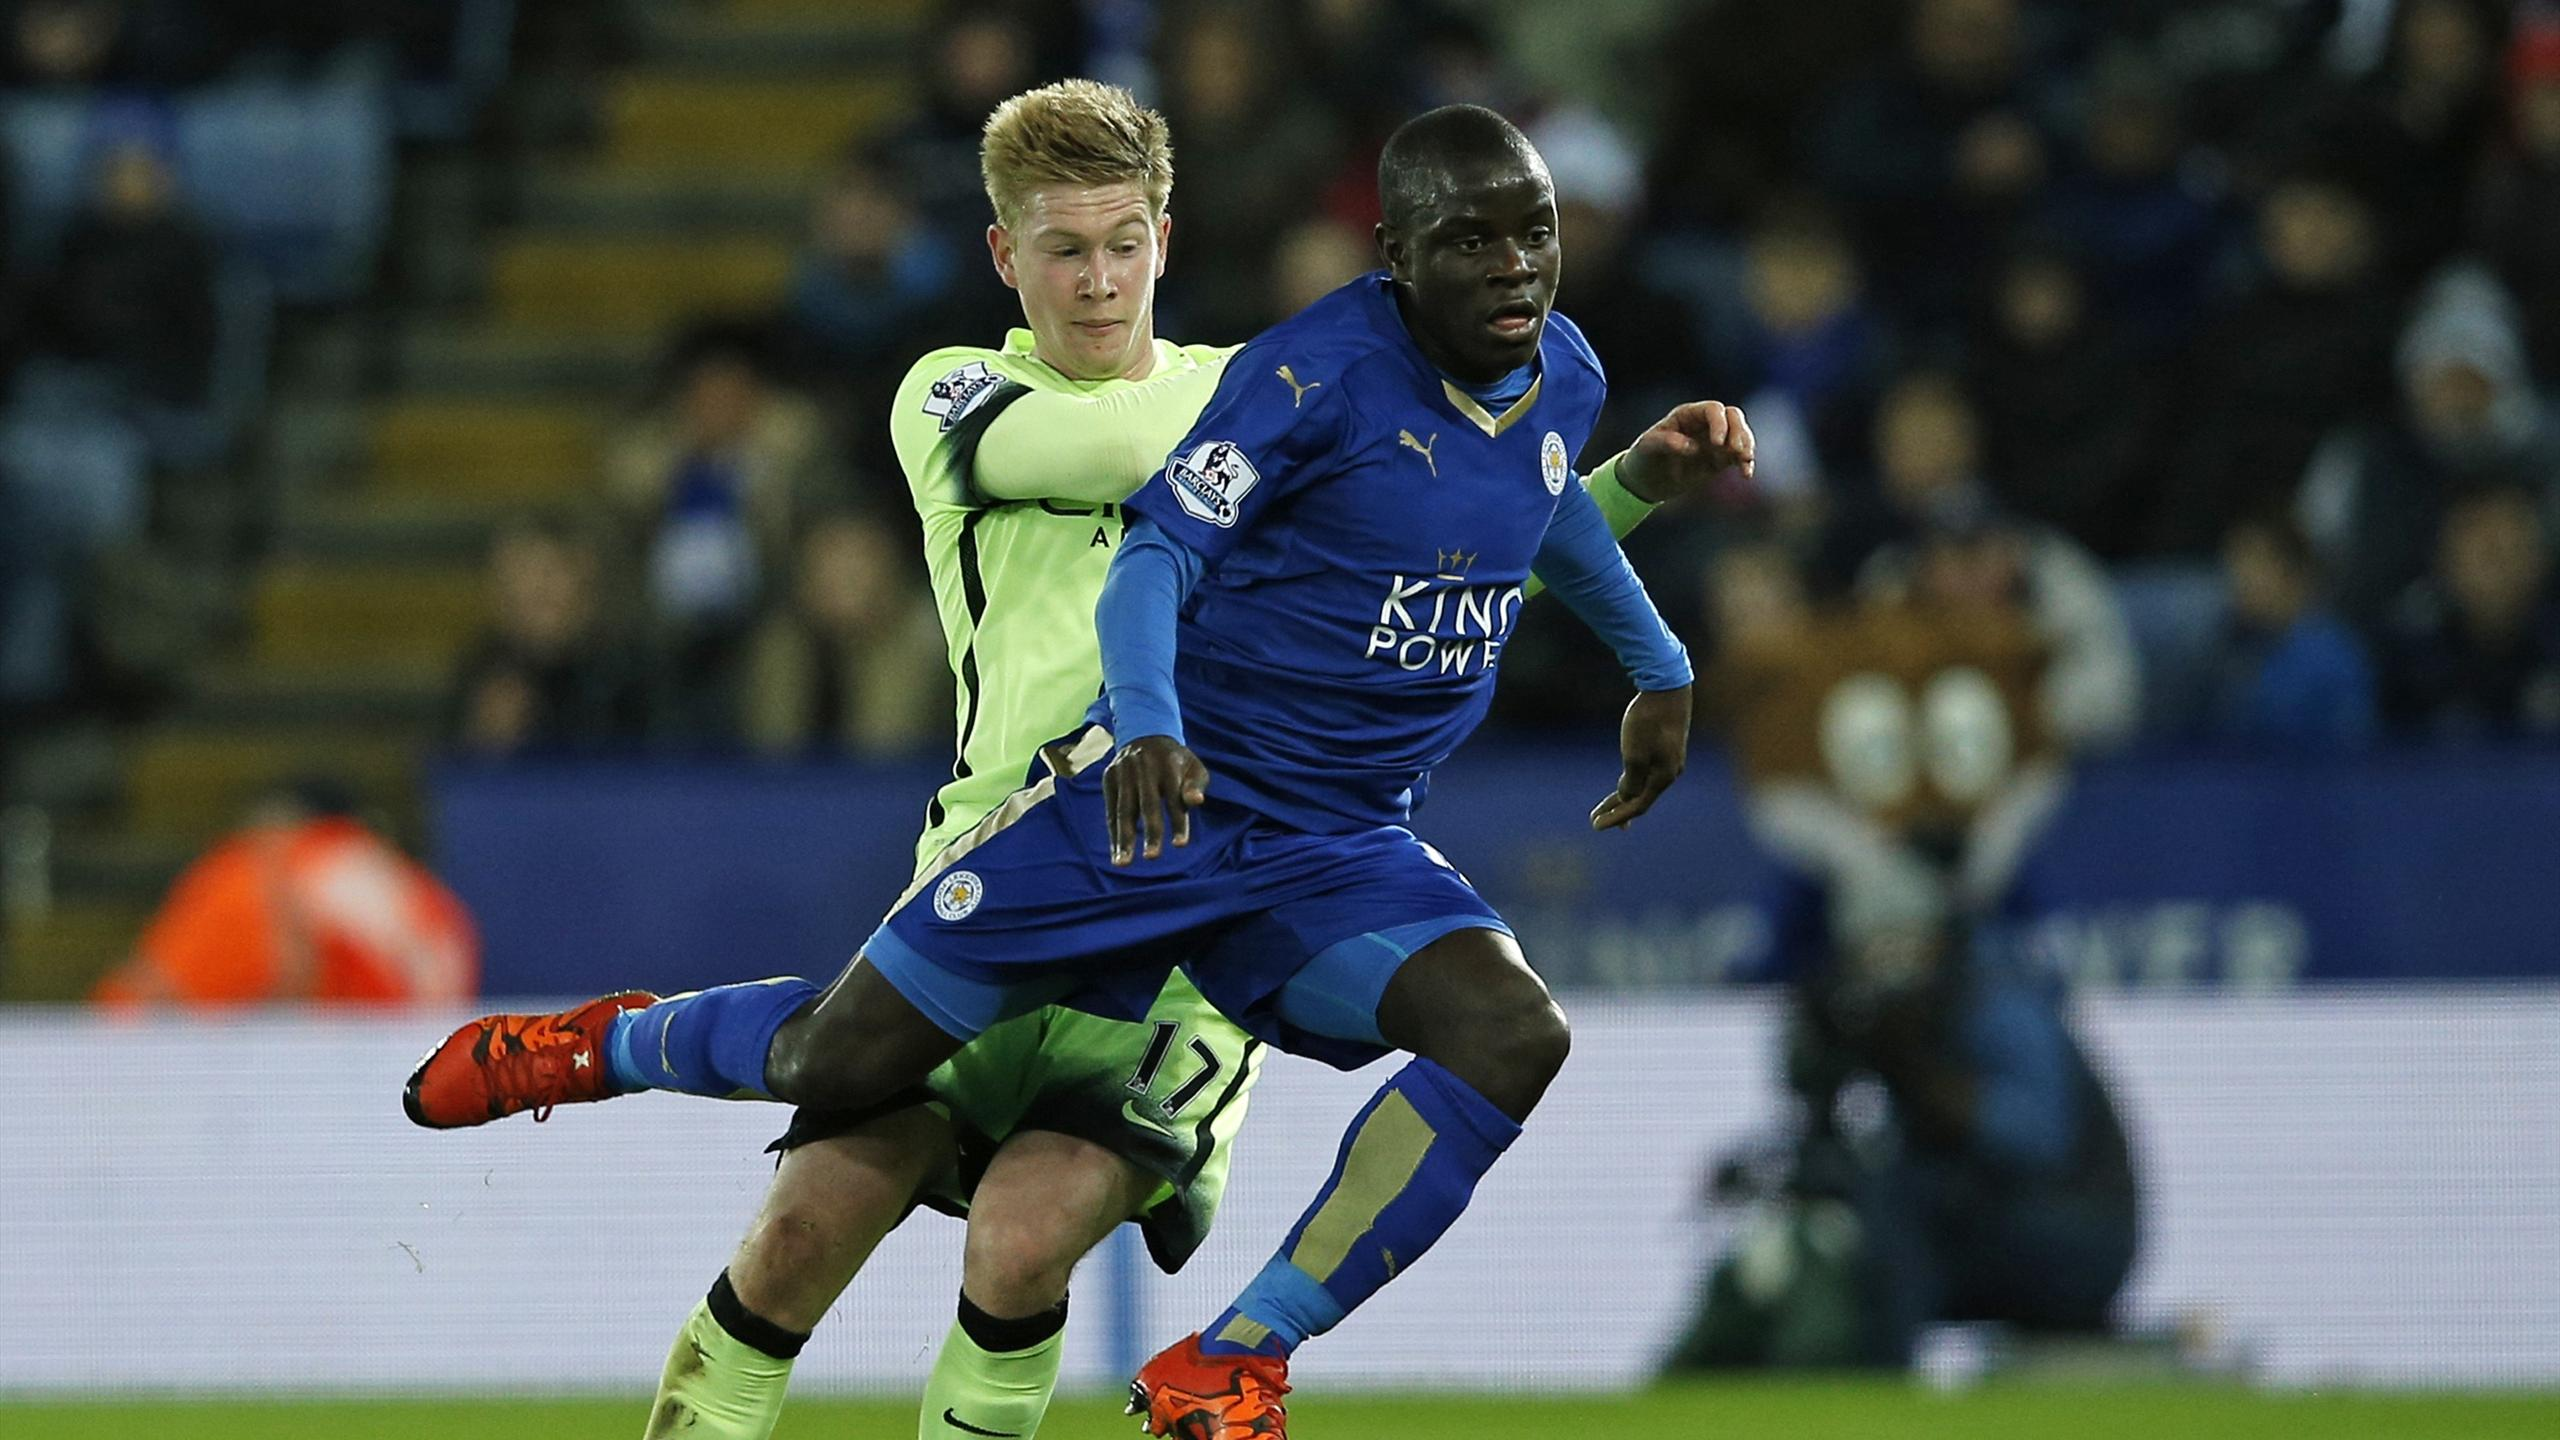 Kevin De Bruyne (Manchester City) tries to get the ball off N'Golo Kanté (Leicester City)